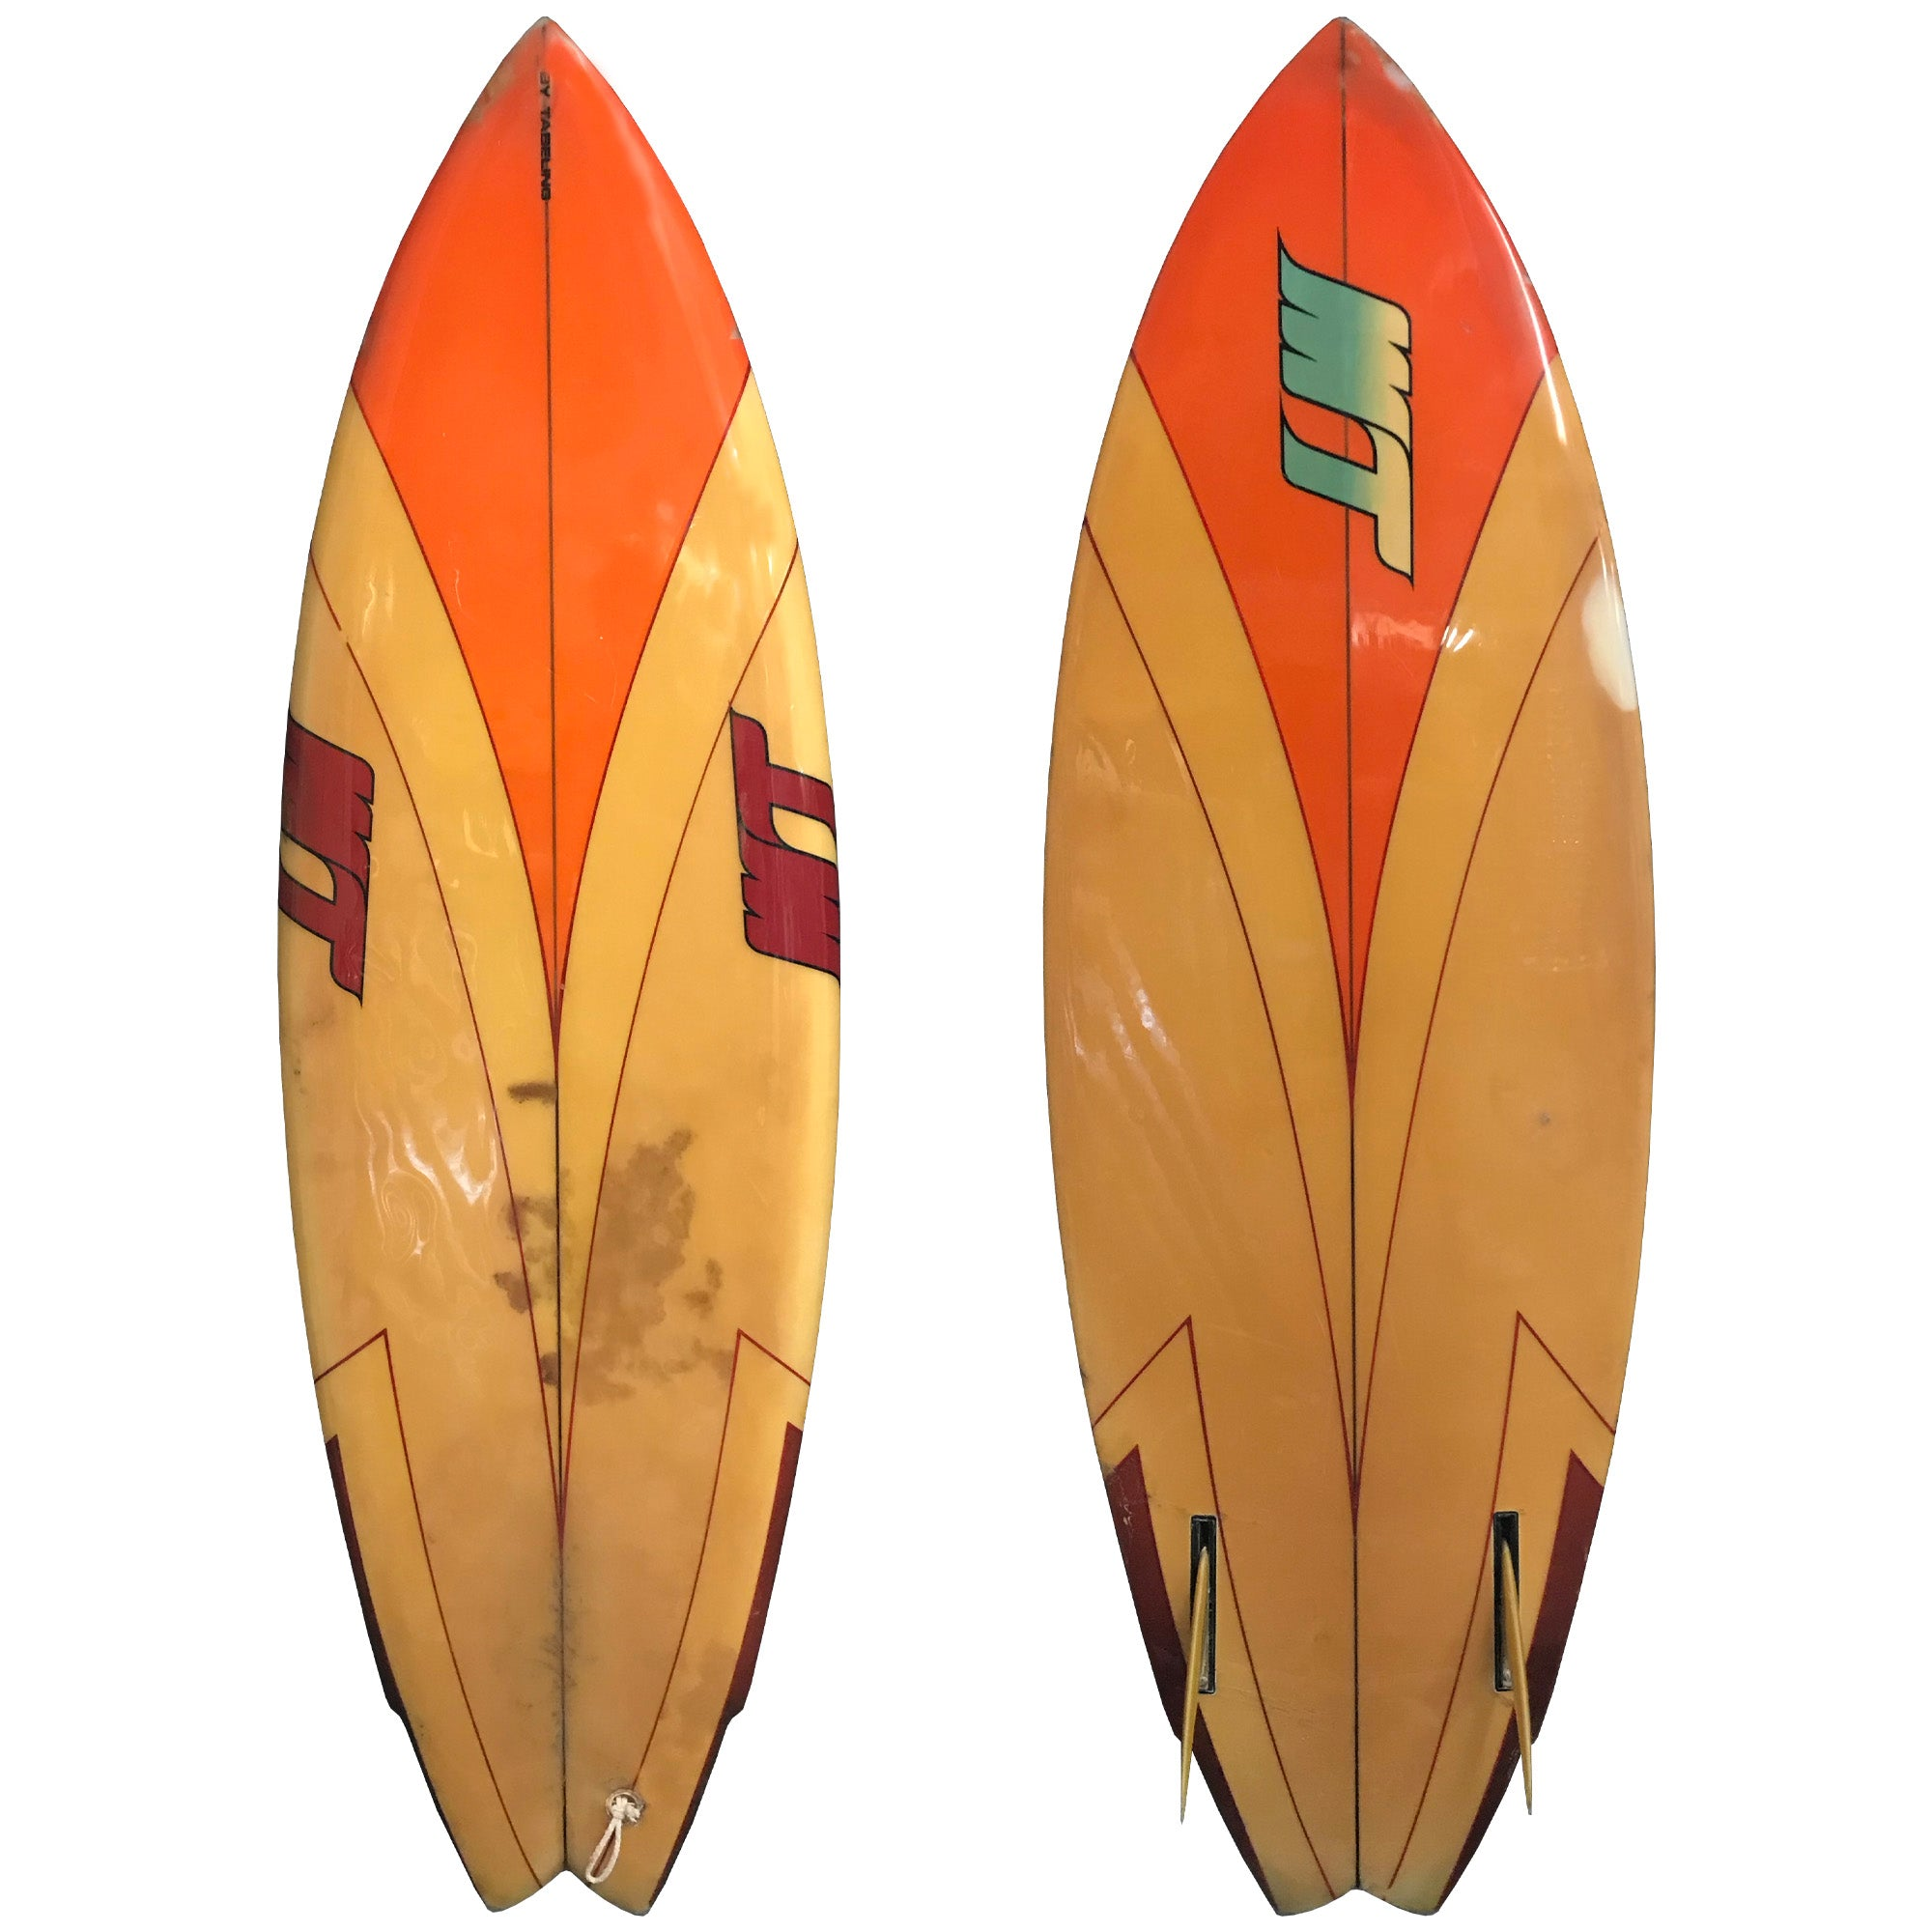 MTB Mike Tabeling 5'8 Collector's Surfboard